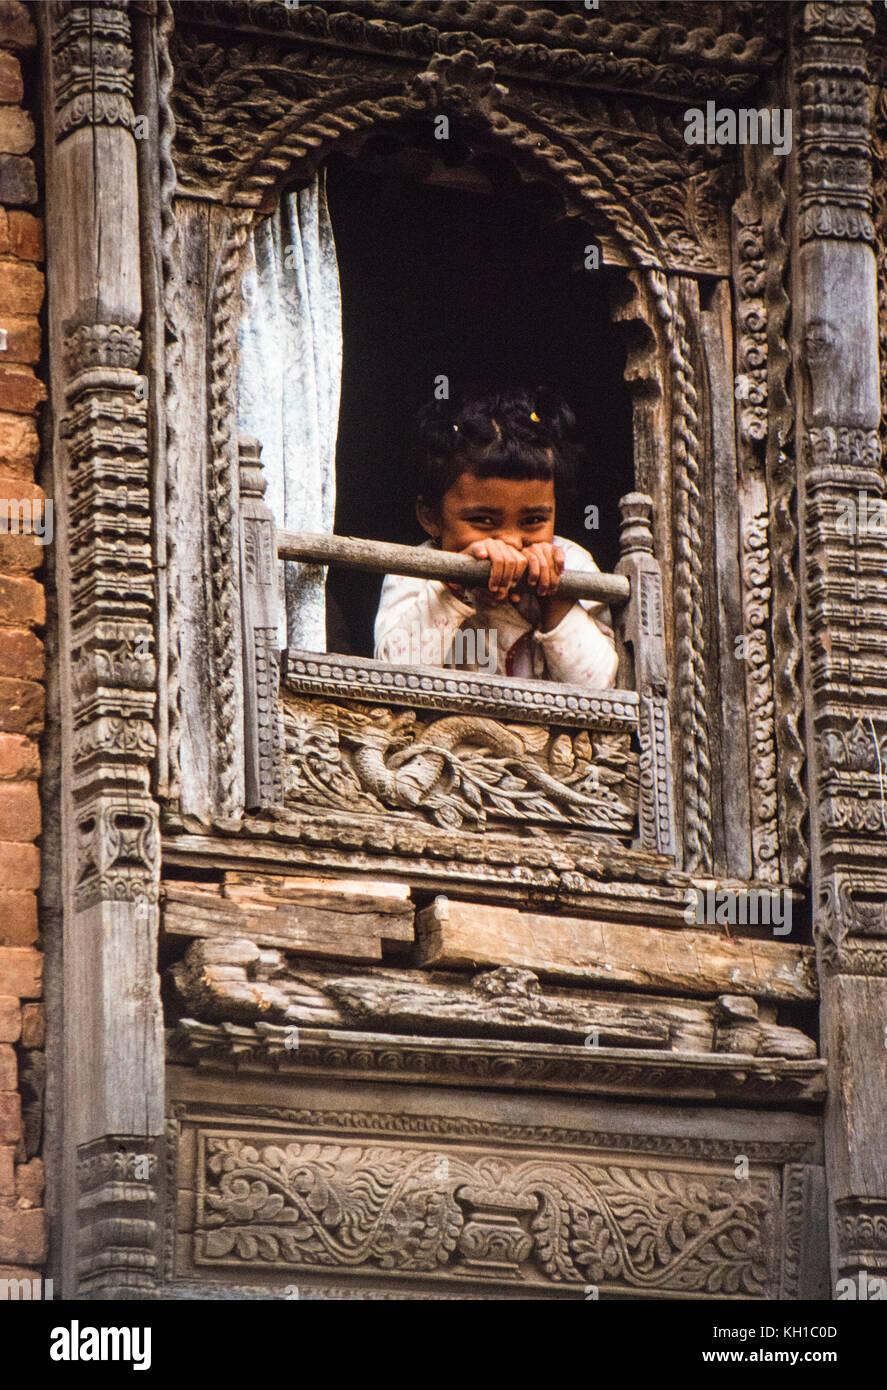 Nepali Girl in Window - Stock Image